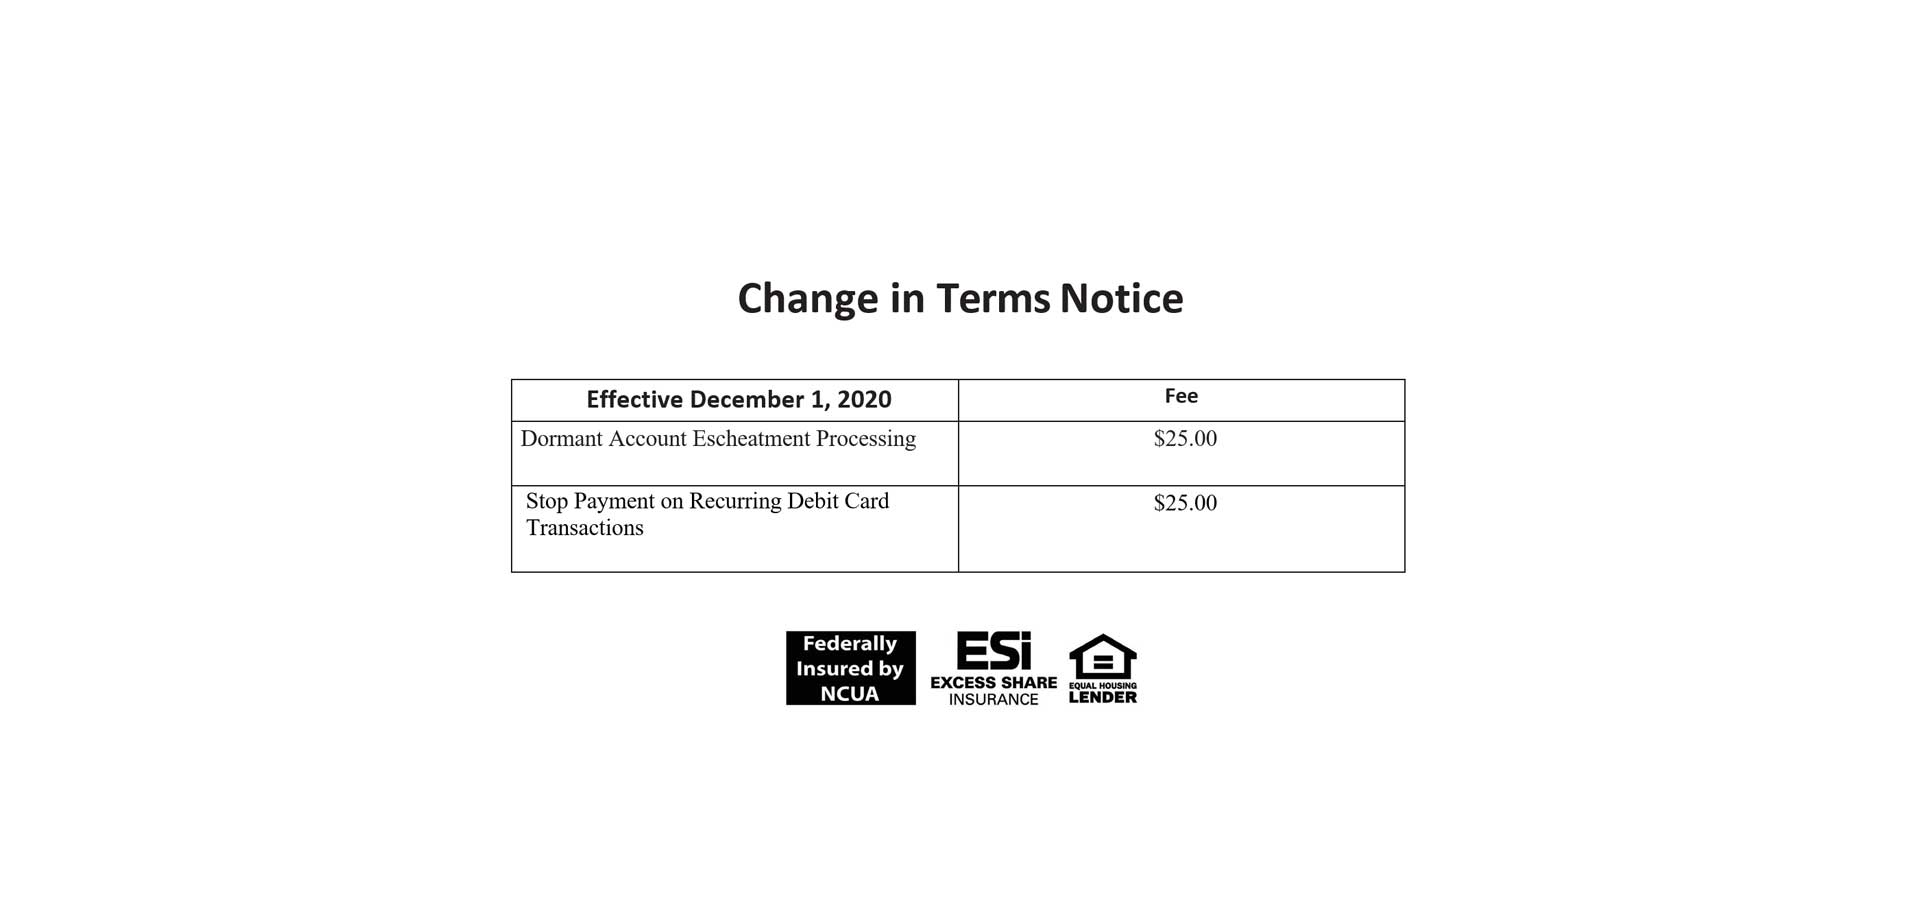 Change in Terms Notice